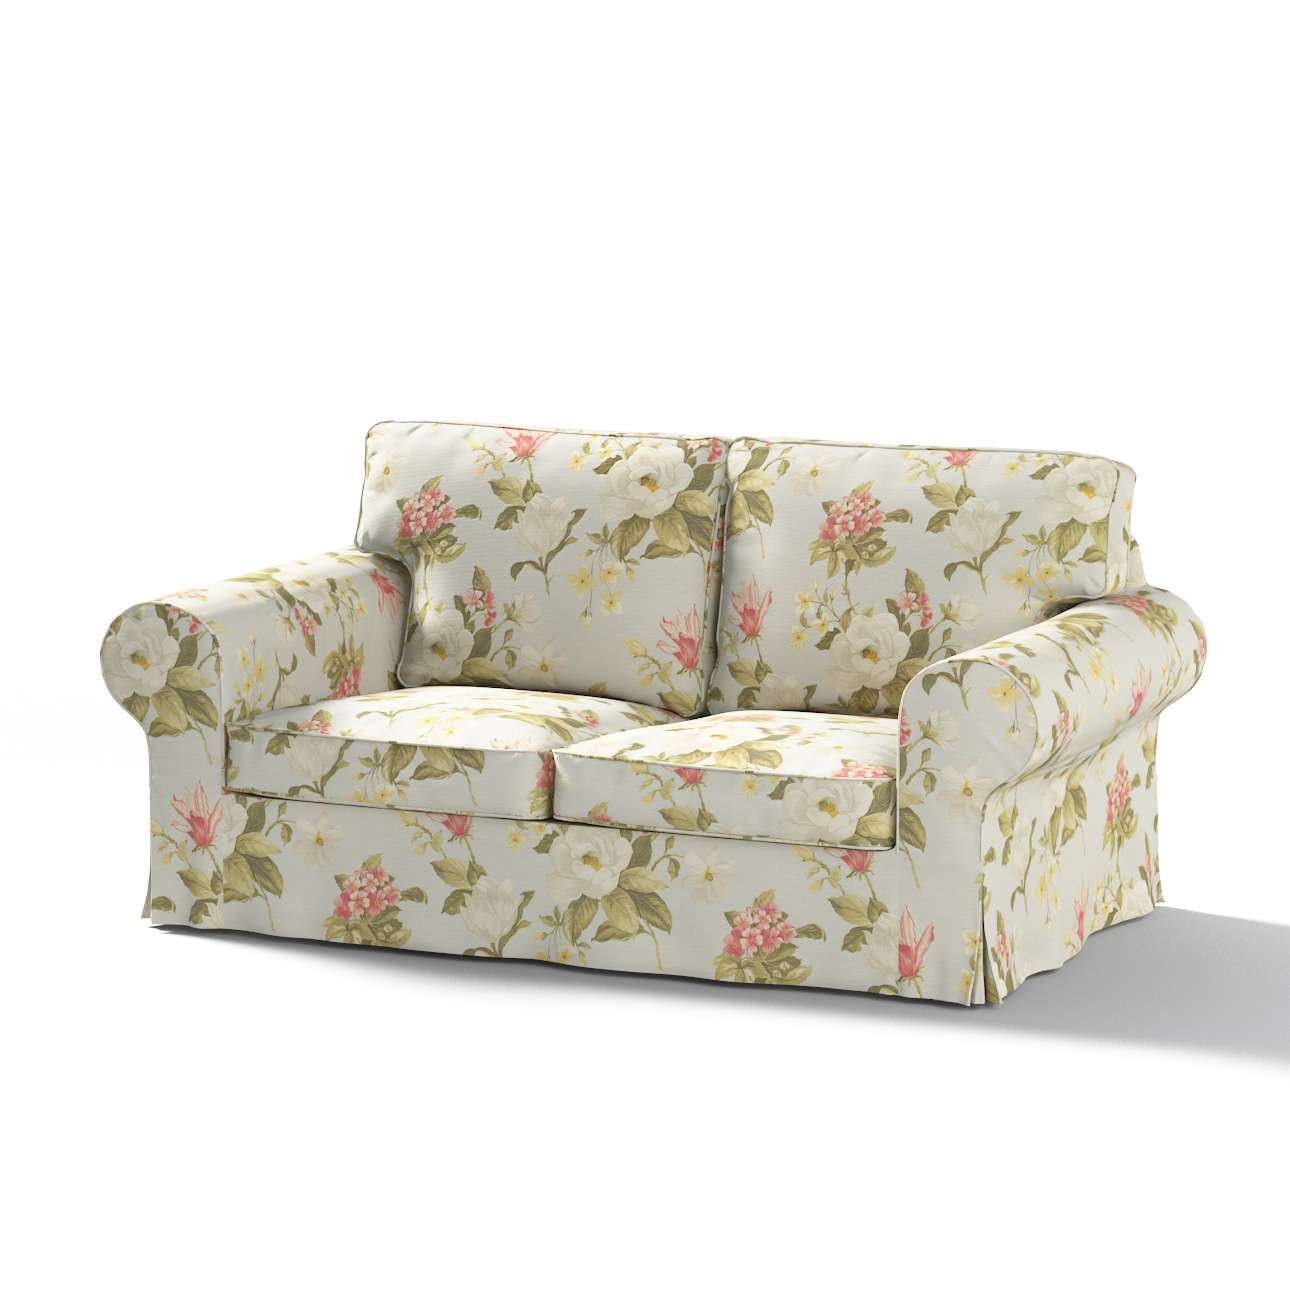 Fabulous Ektorp 2 Seater Sofa Cover Bralicious Painted Fabric Chair Ideas Braliciousco